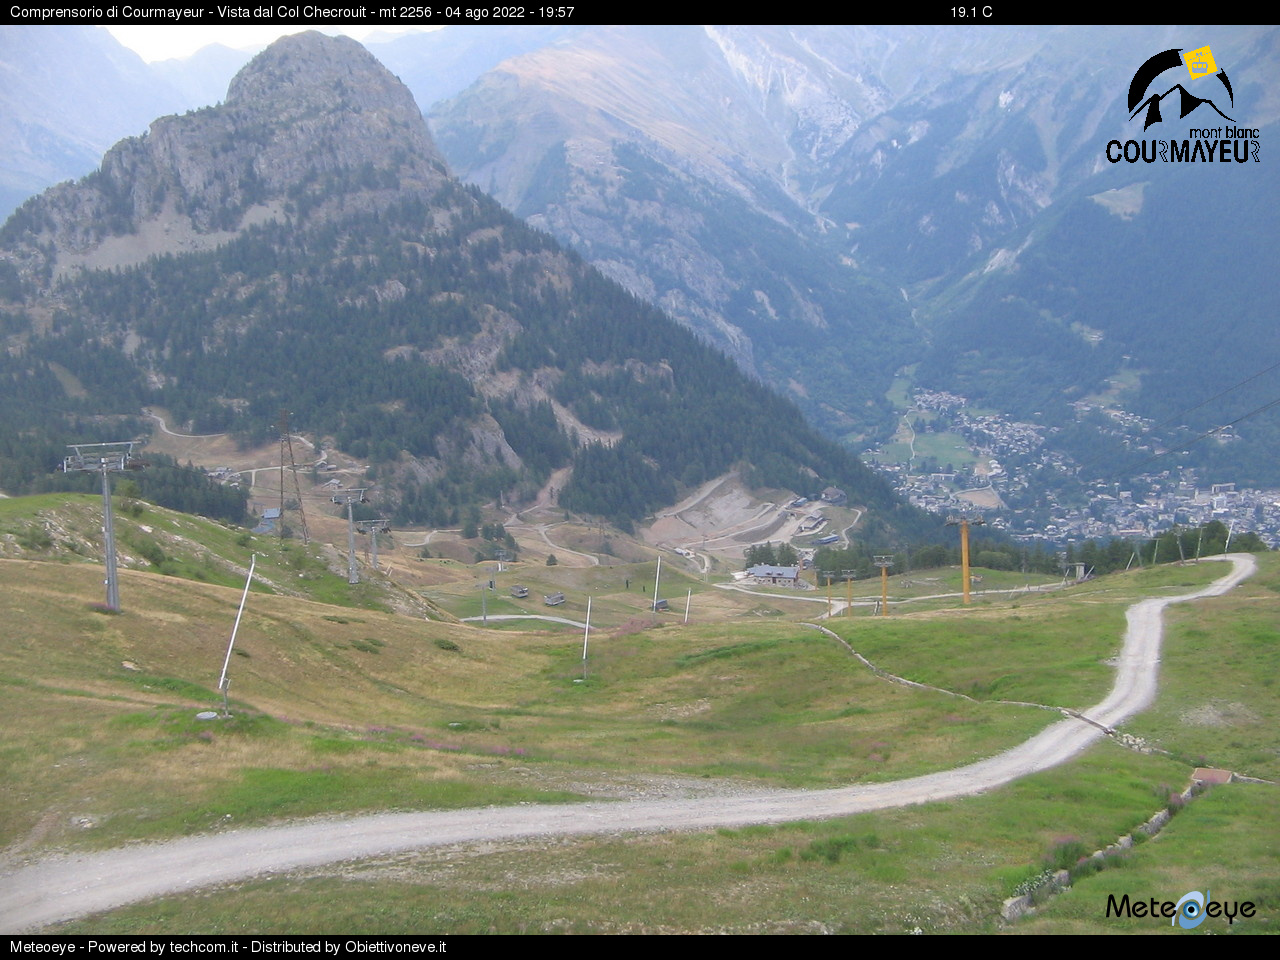 Webcam Courmayeur View Monte Bianco